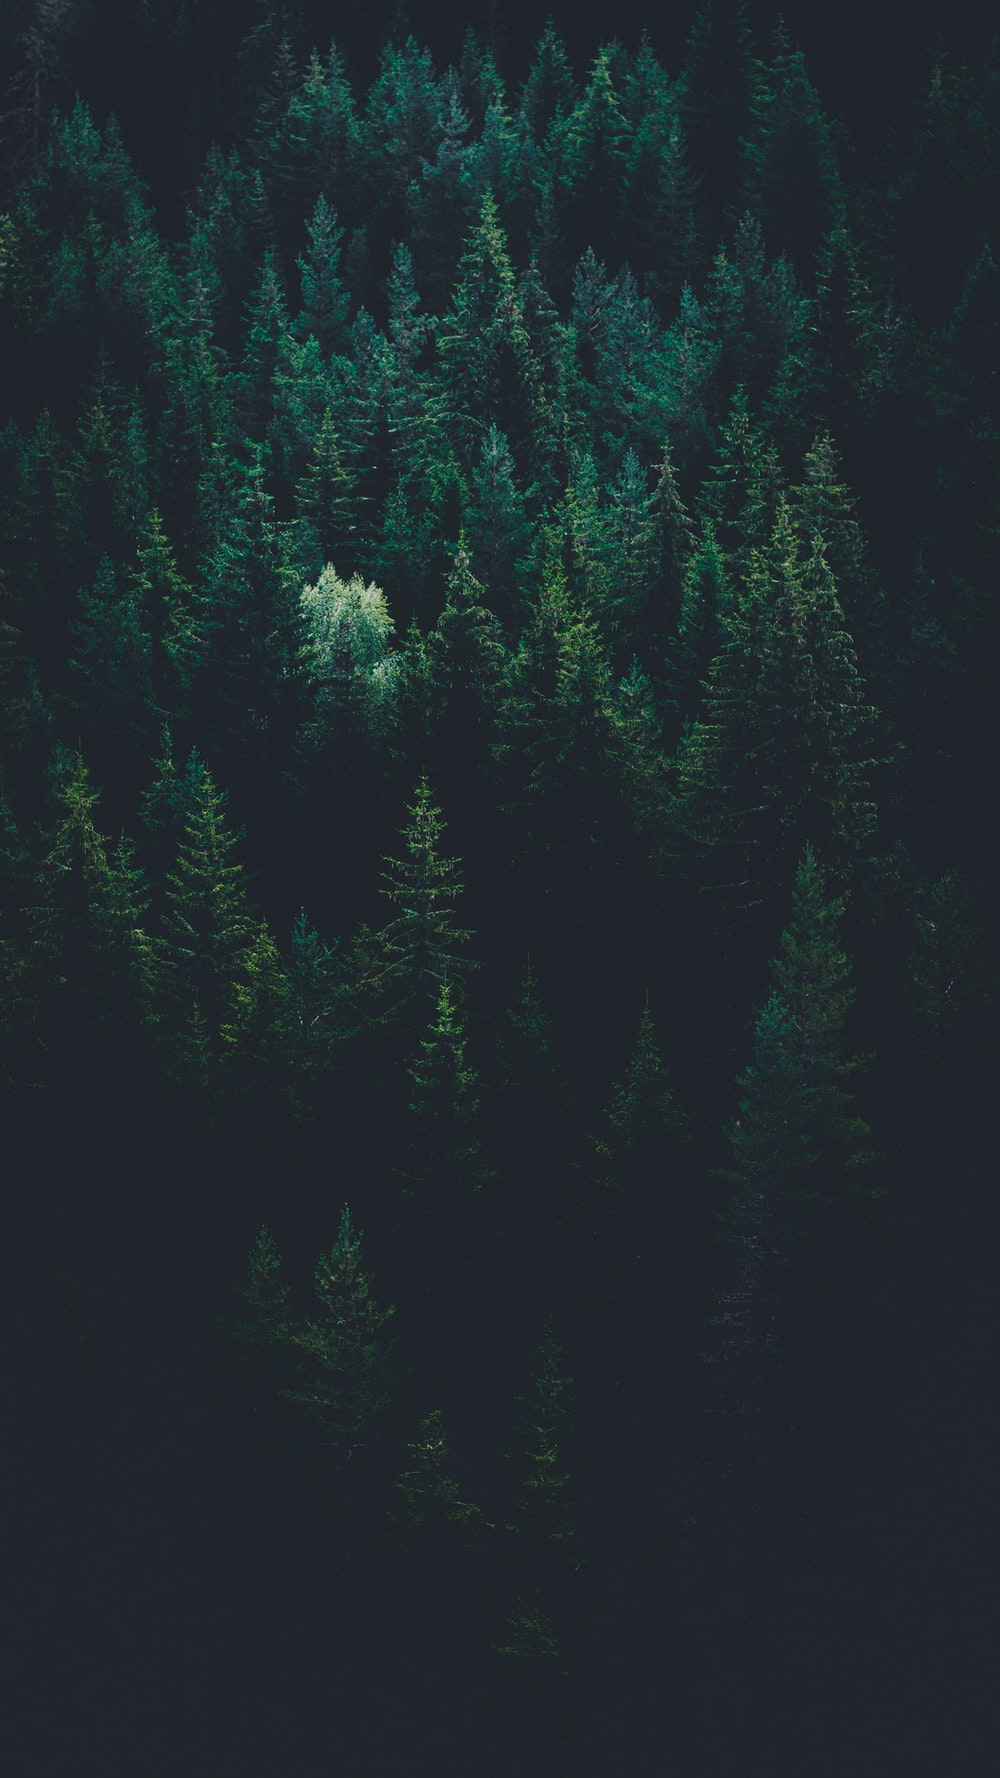 scenery of forest trees